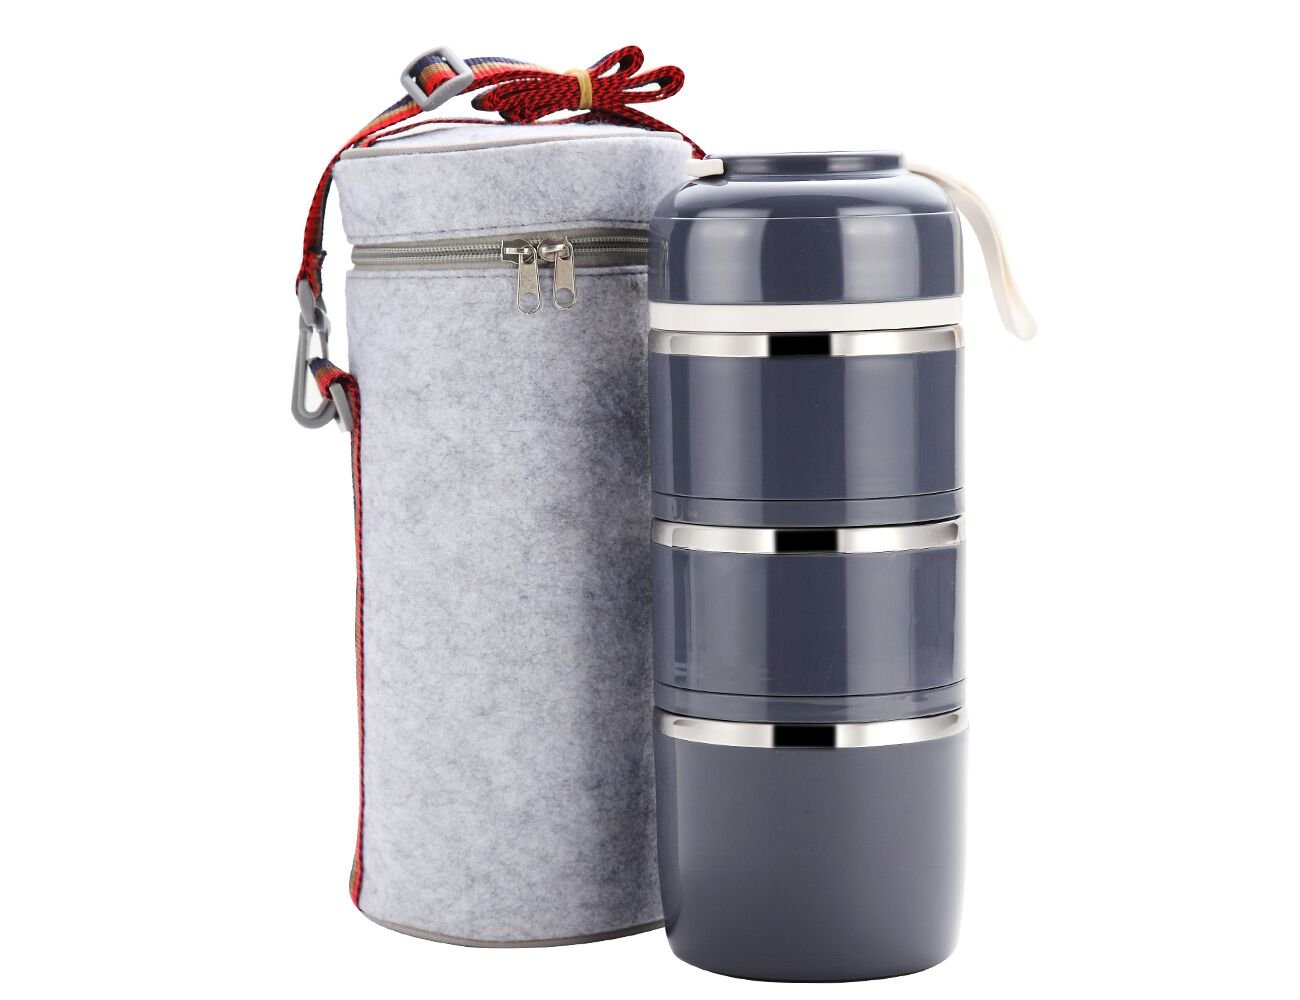 Bento Lunch Box, Portable Stainless Steel Insulated Lunch Box with Lunch Bag, BPA Free Leakproof Food Storage Container.(3Layer, Gray)